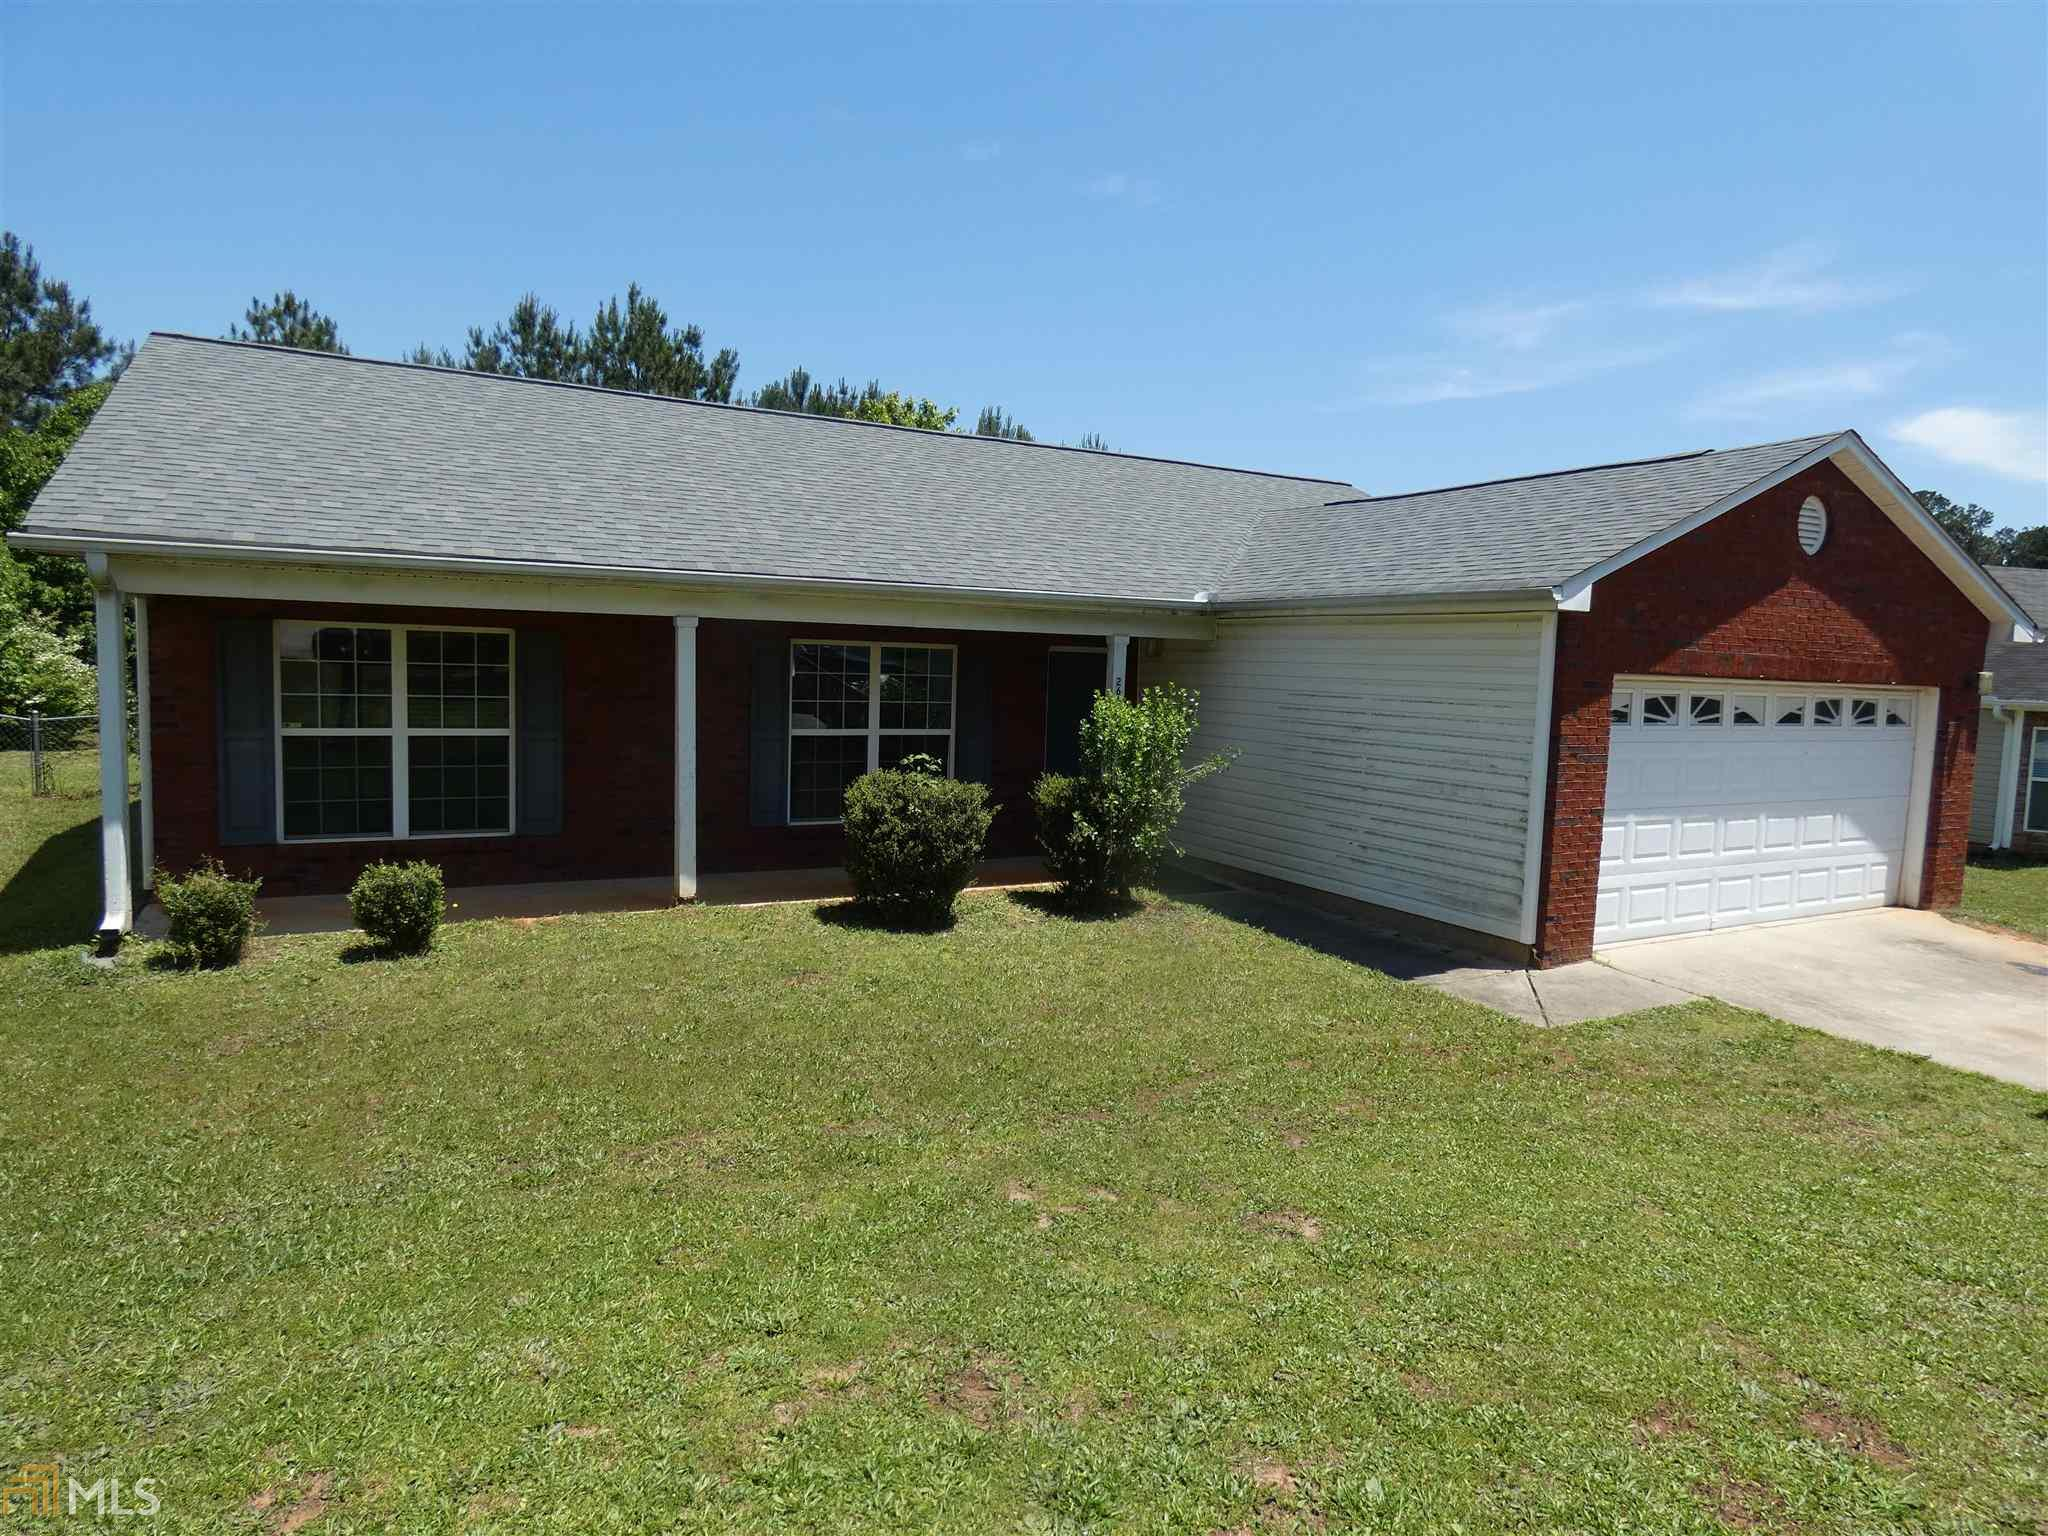 Image for property 265 Whistle Way, Locust Grove, GA 30248